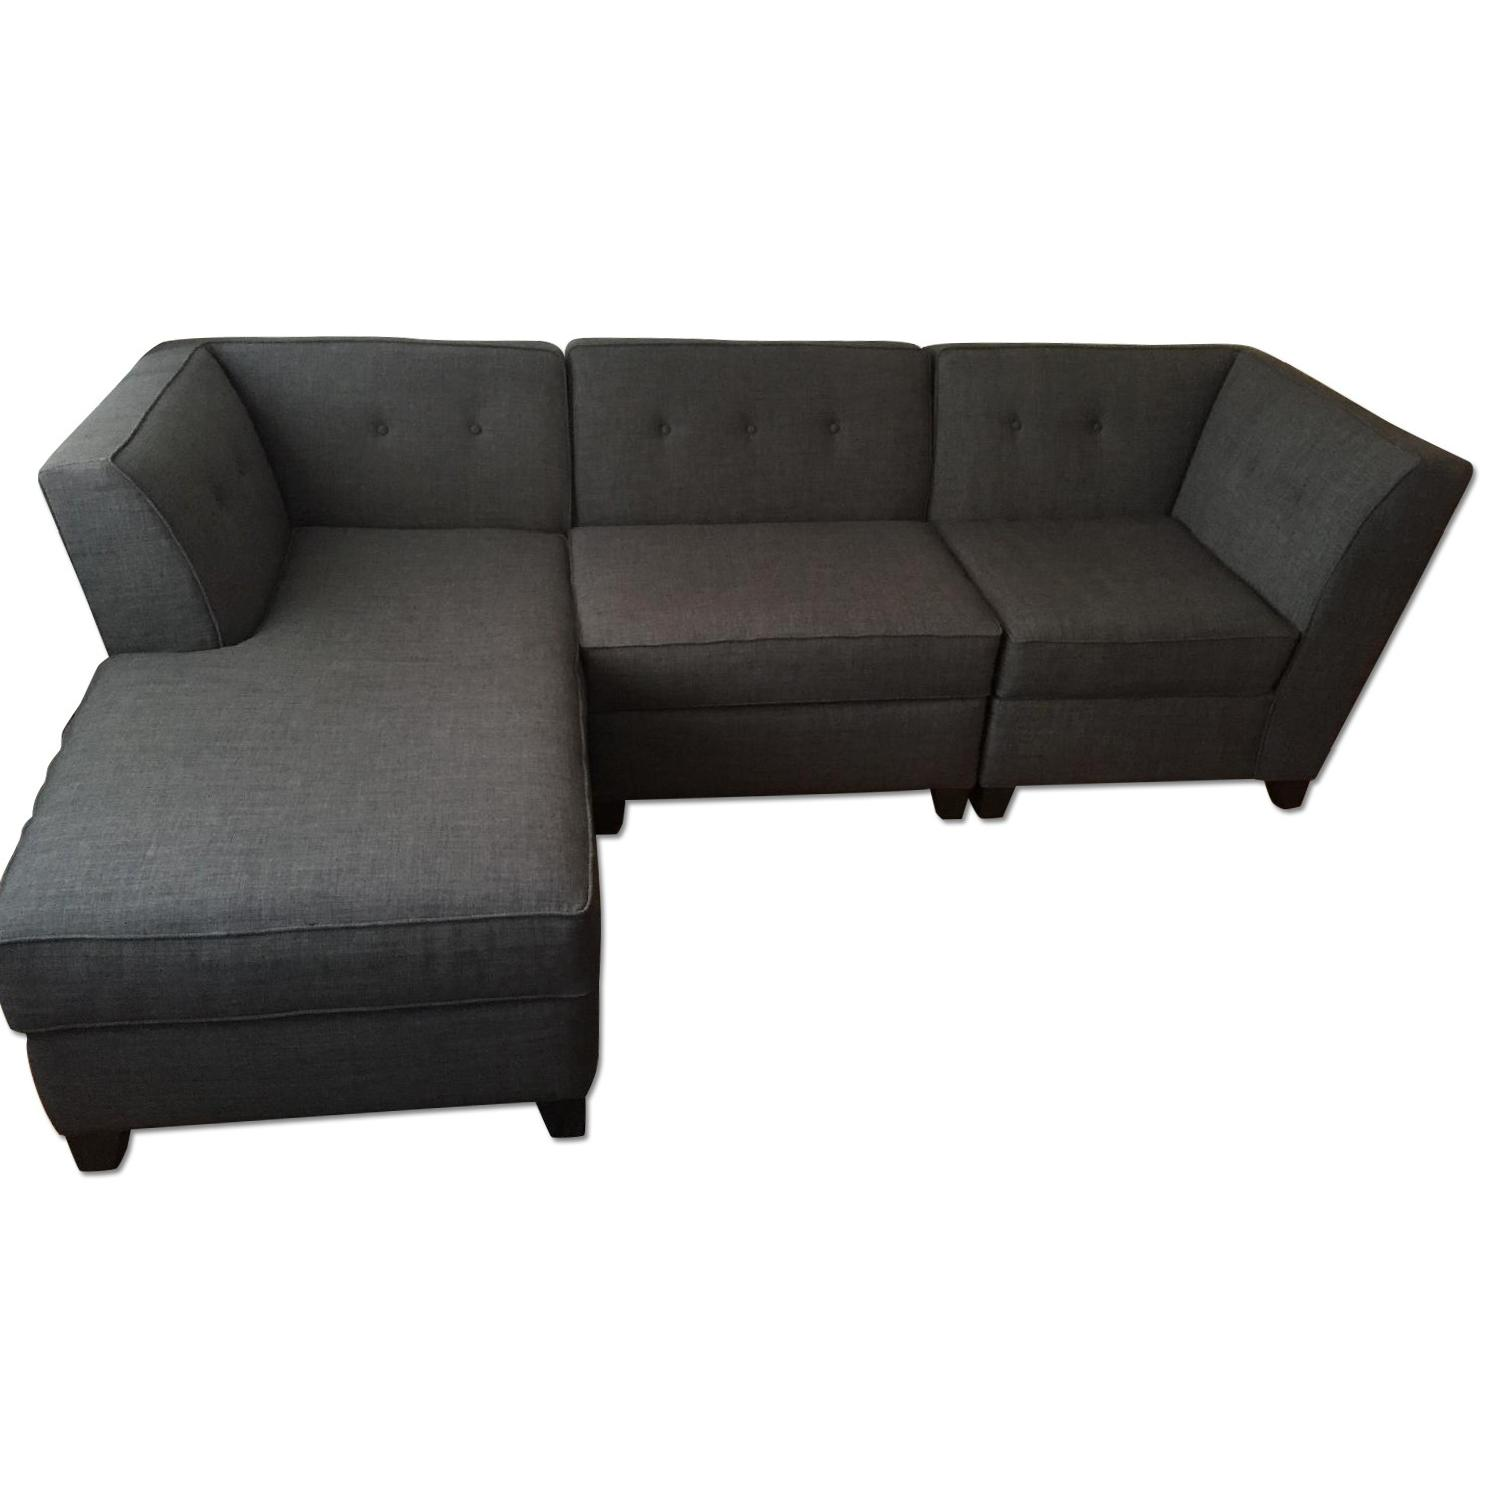 harper fabric 6 piece modular sectional sofa bed with storage drawer sell furniture aptdecosell aptdeco